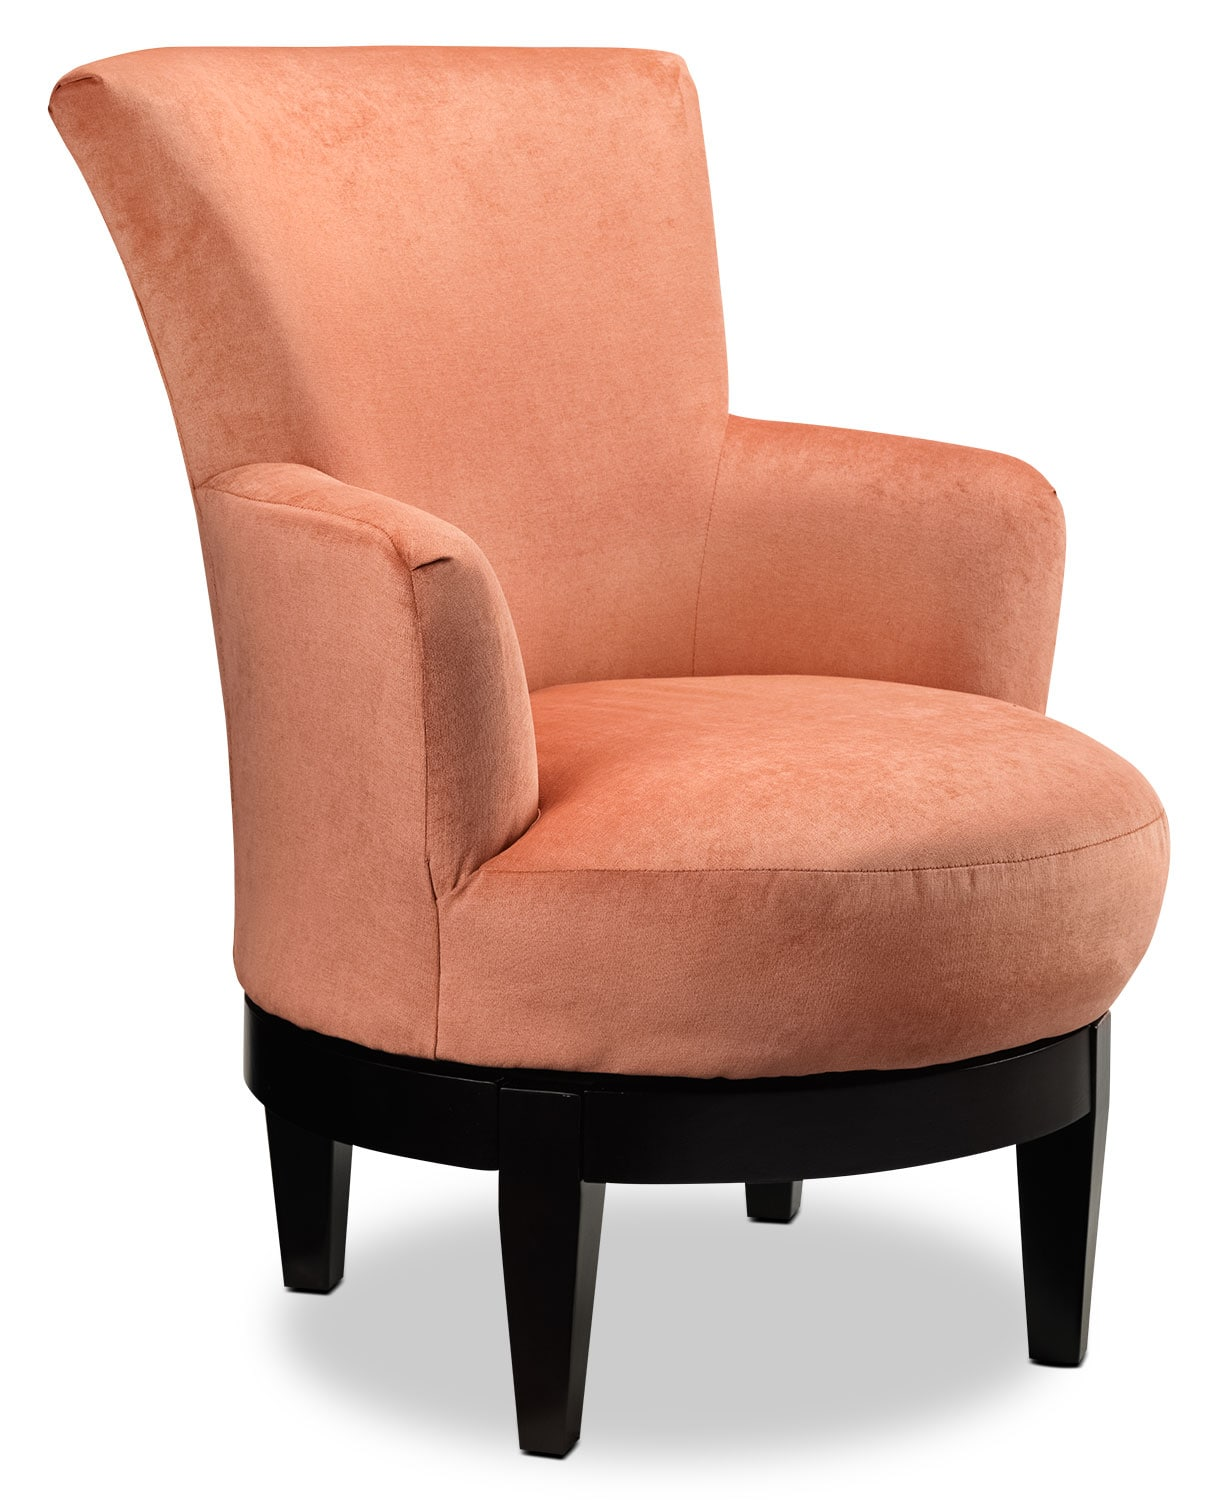 Justine Accent Chair - Spice